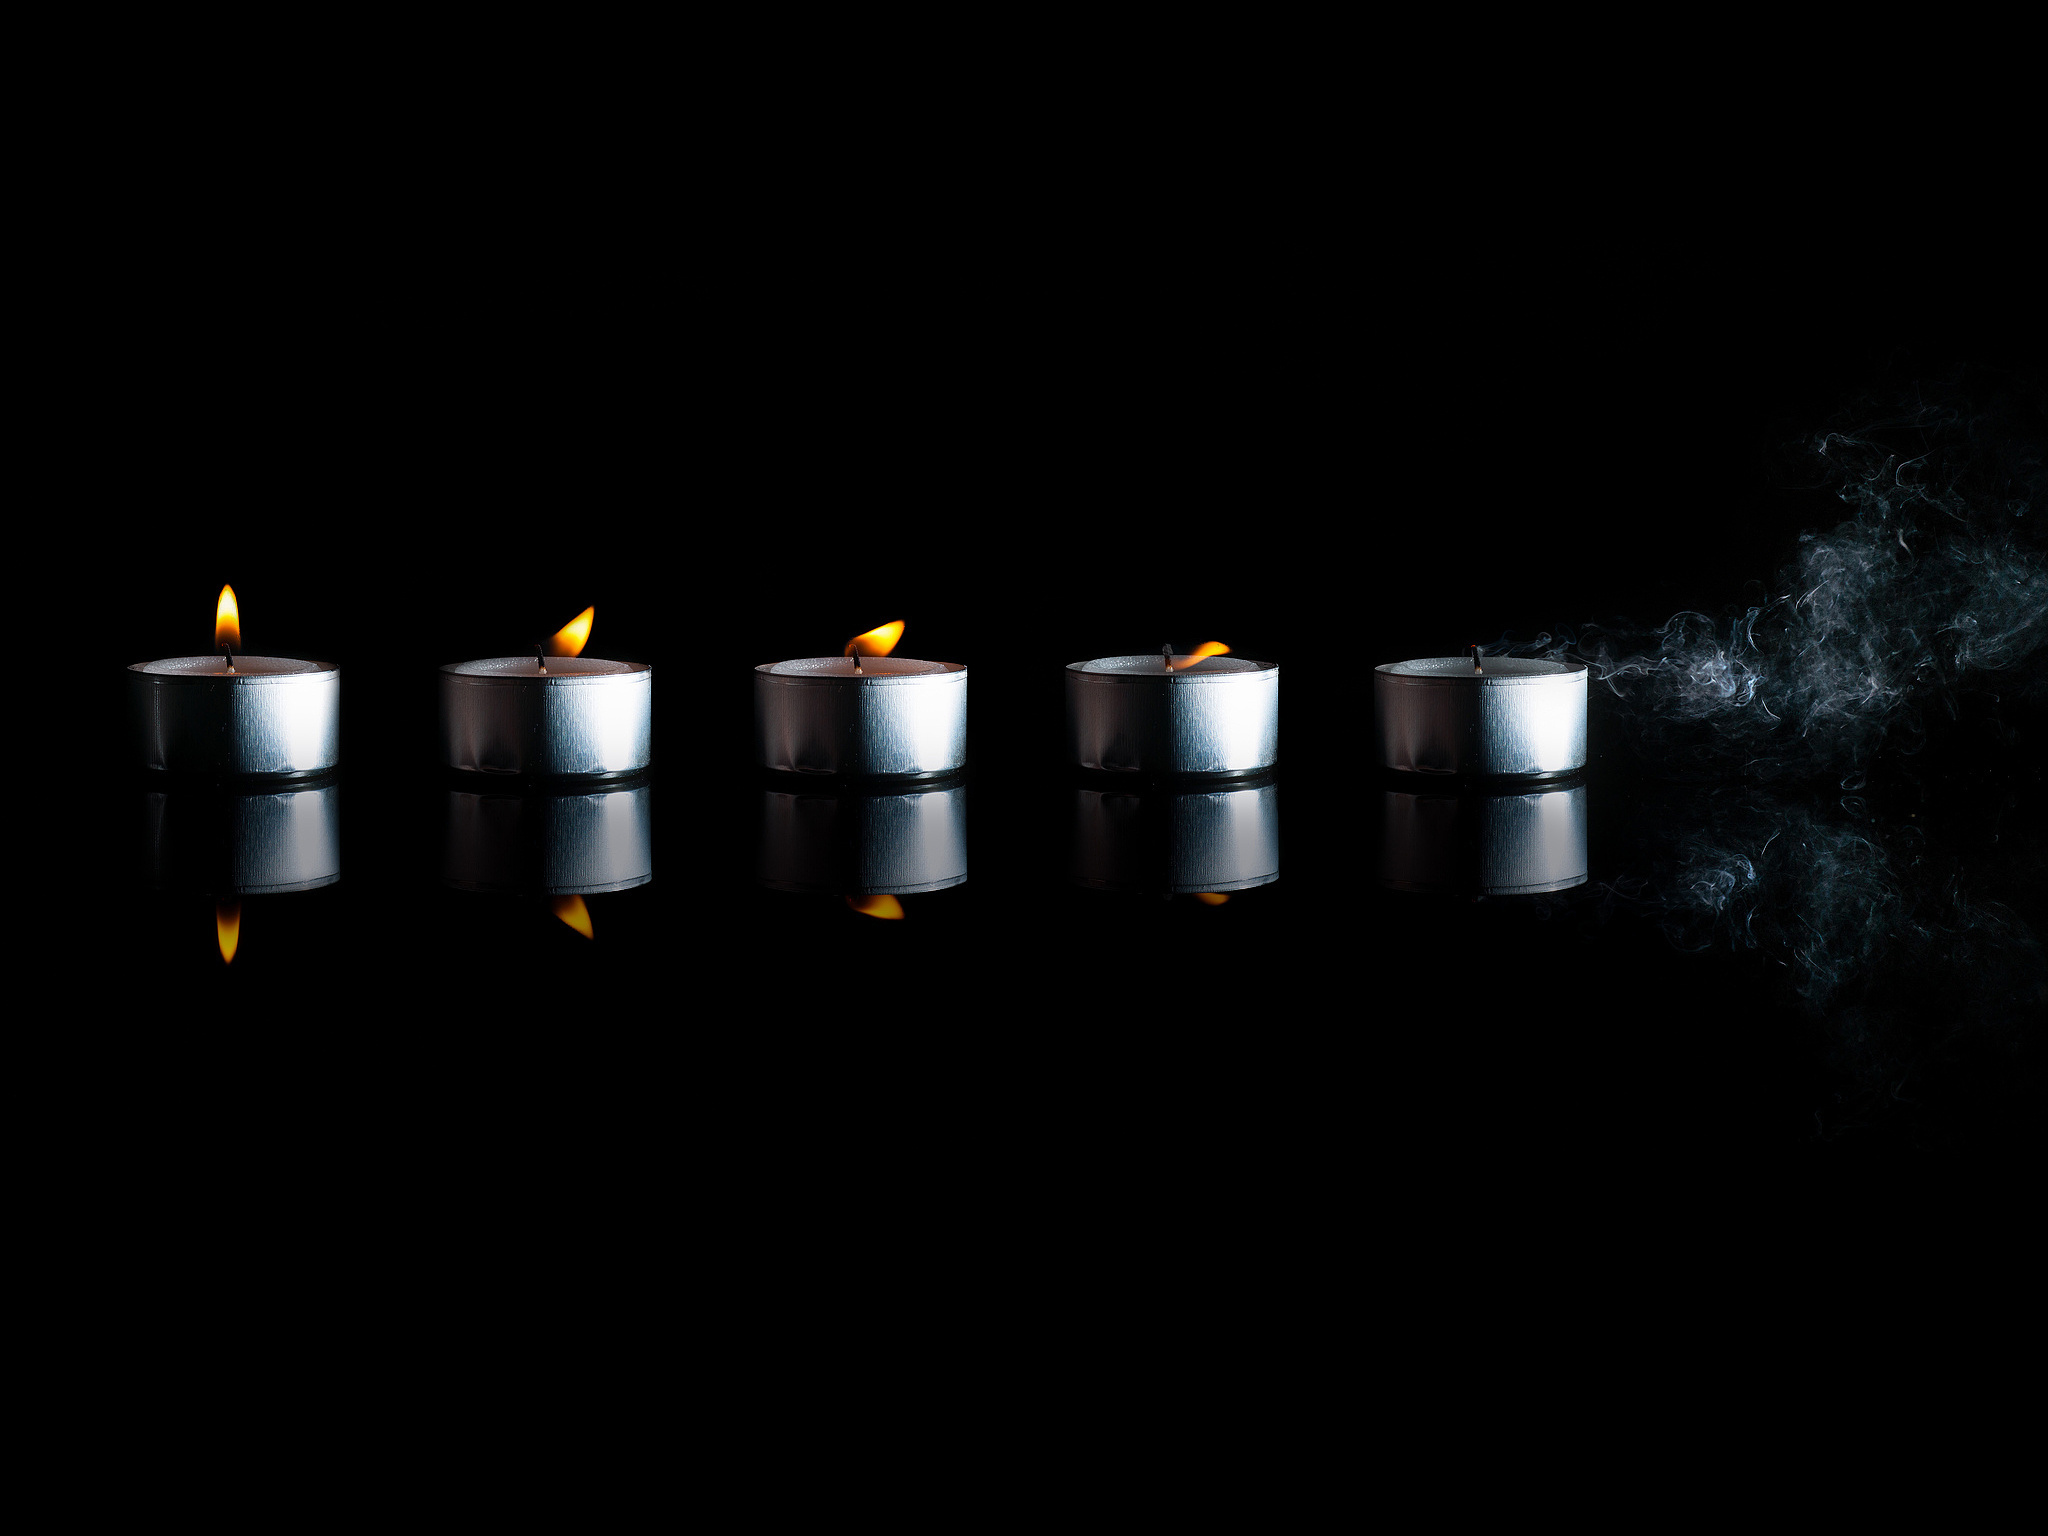 Candle Wallpaper 12